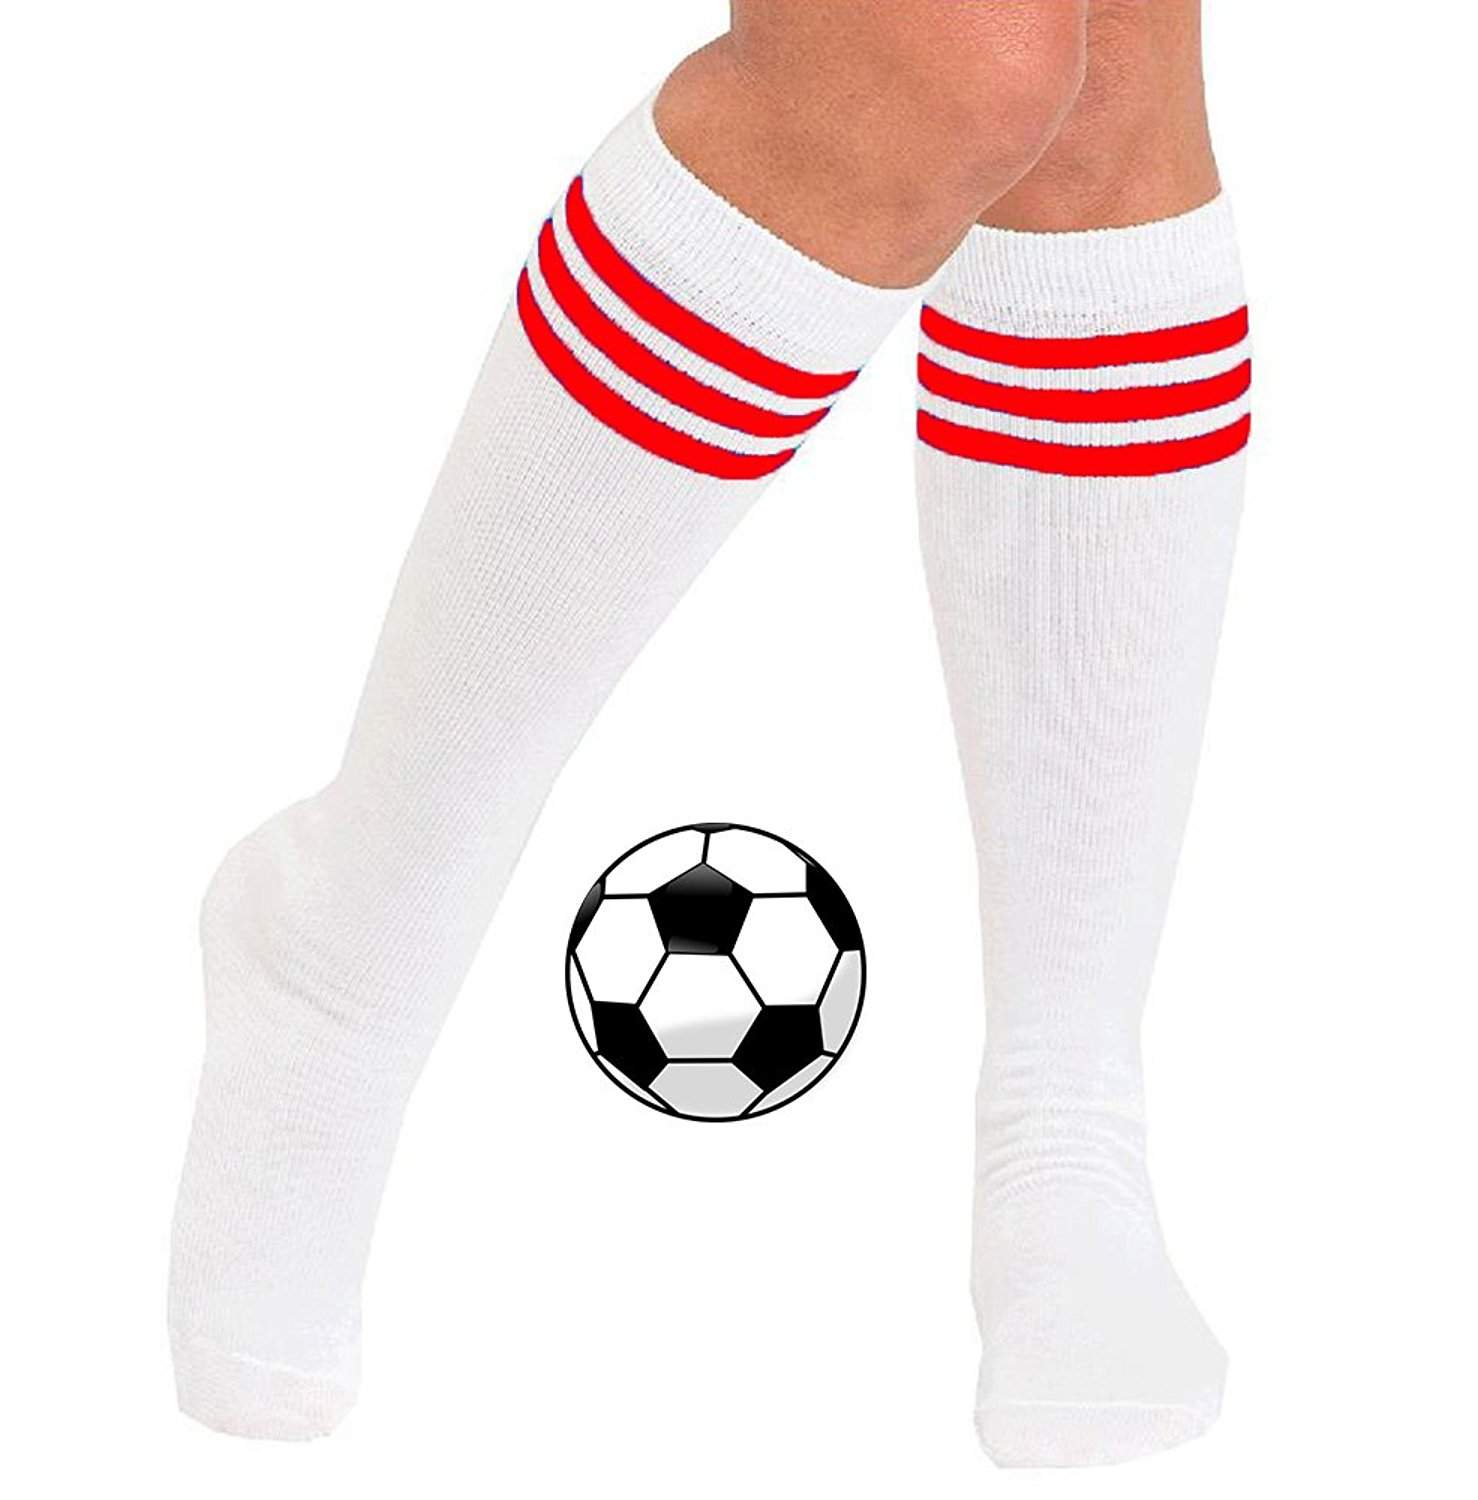 fresh styles catch classic shoes Buy Womens Knee High Striped Long Soccer Socks (3-Pairs ...